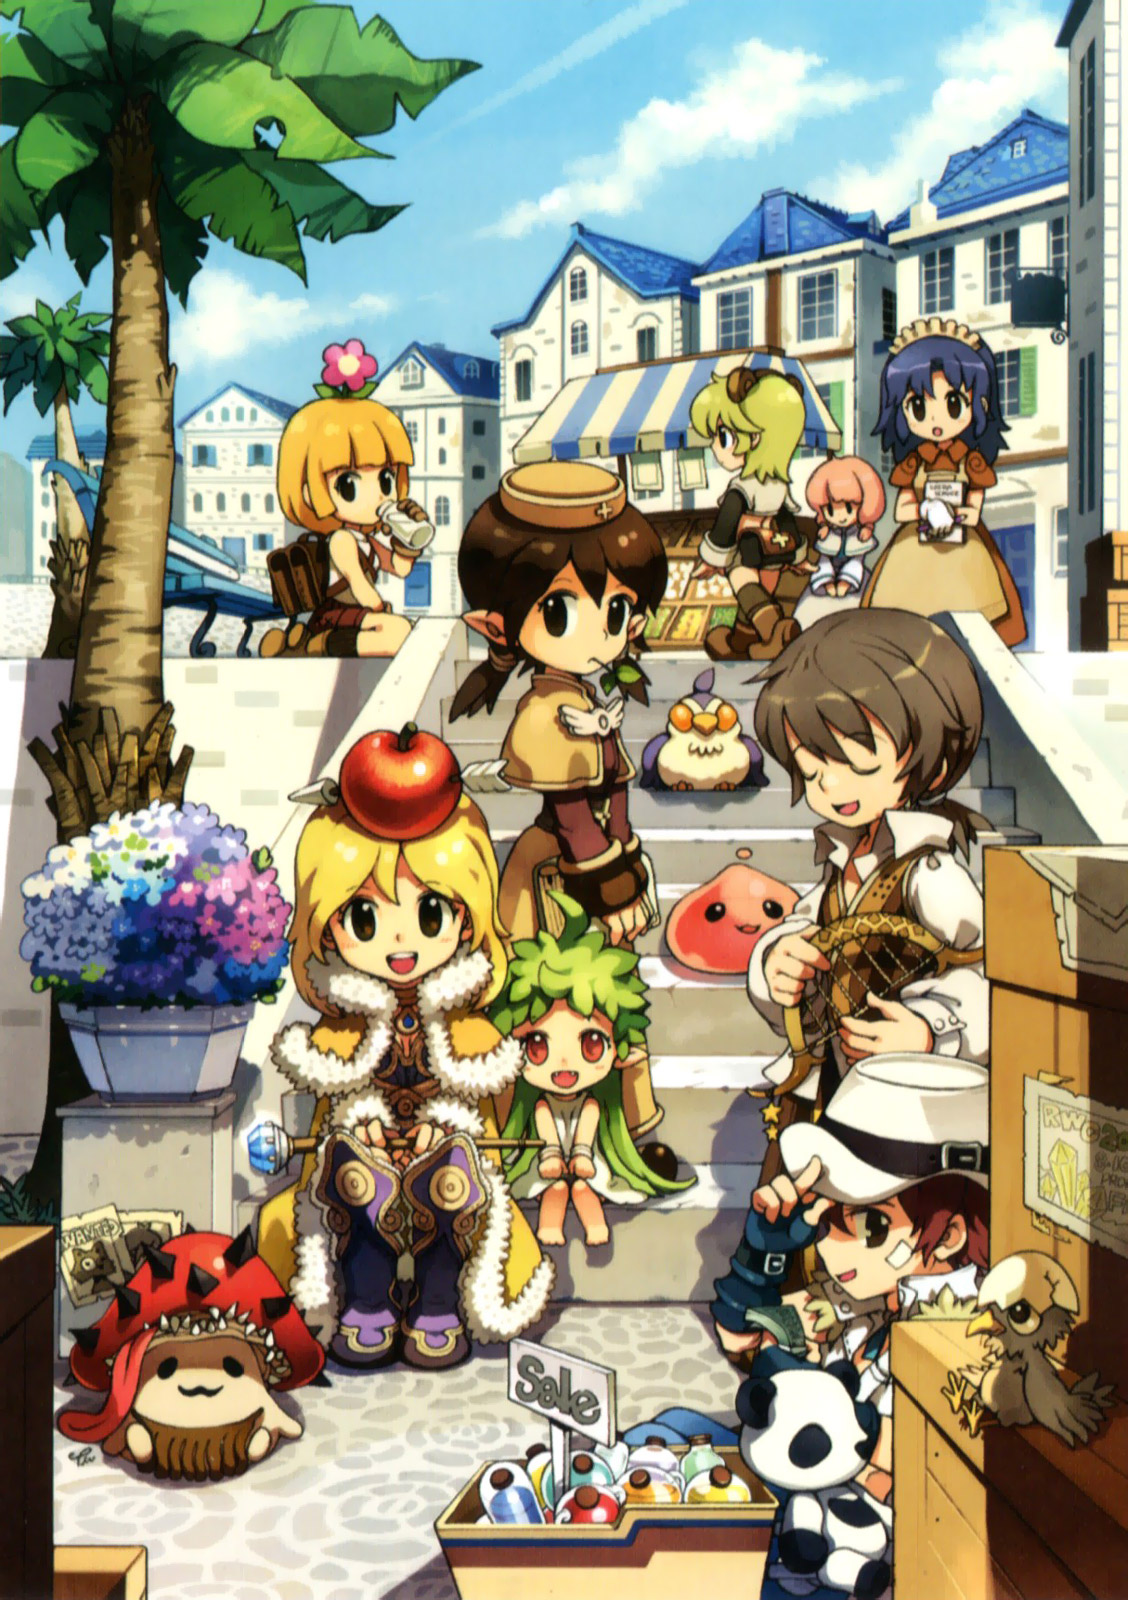 Ragnarok Online 5th anniversary memorial book image by Various Artists